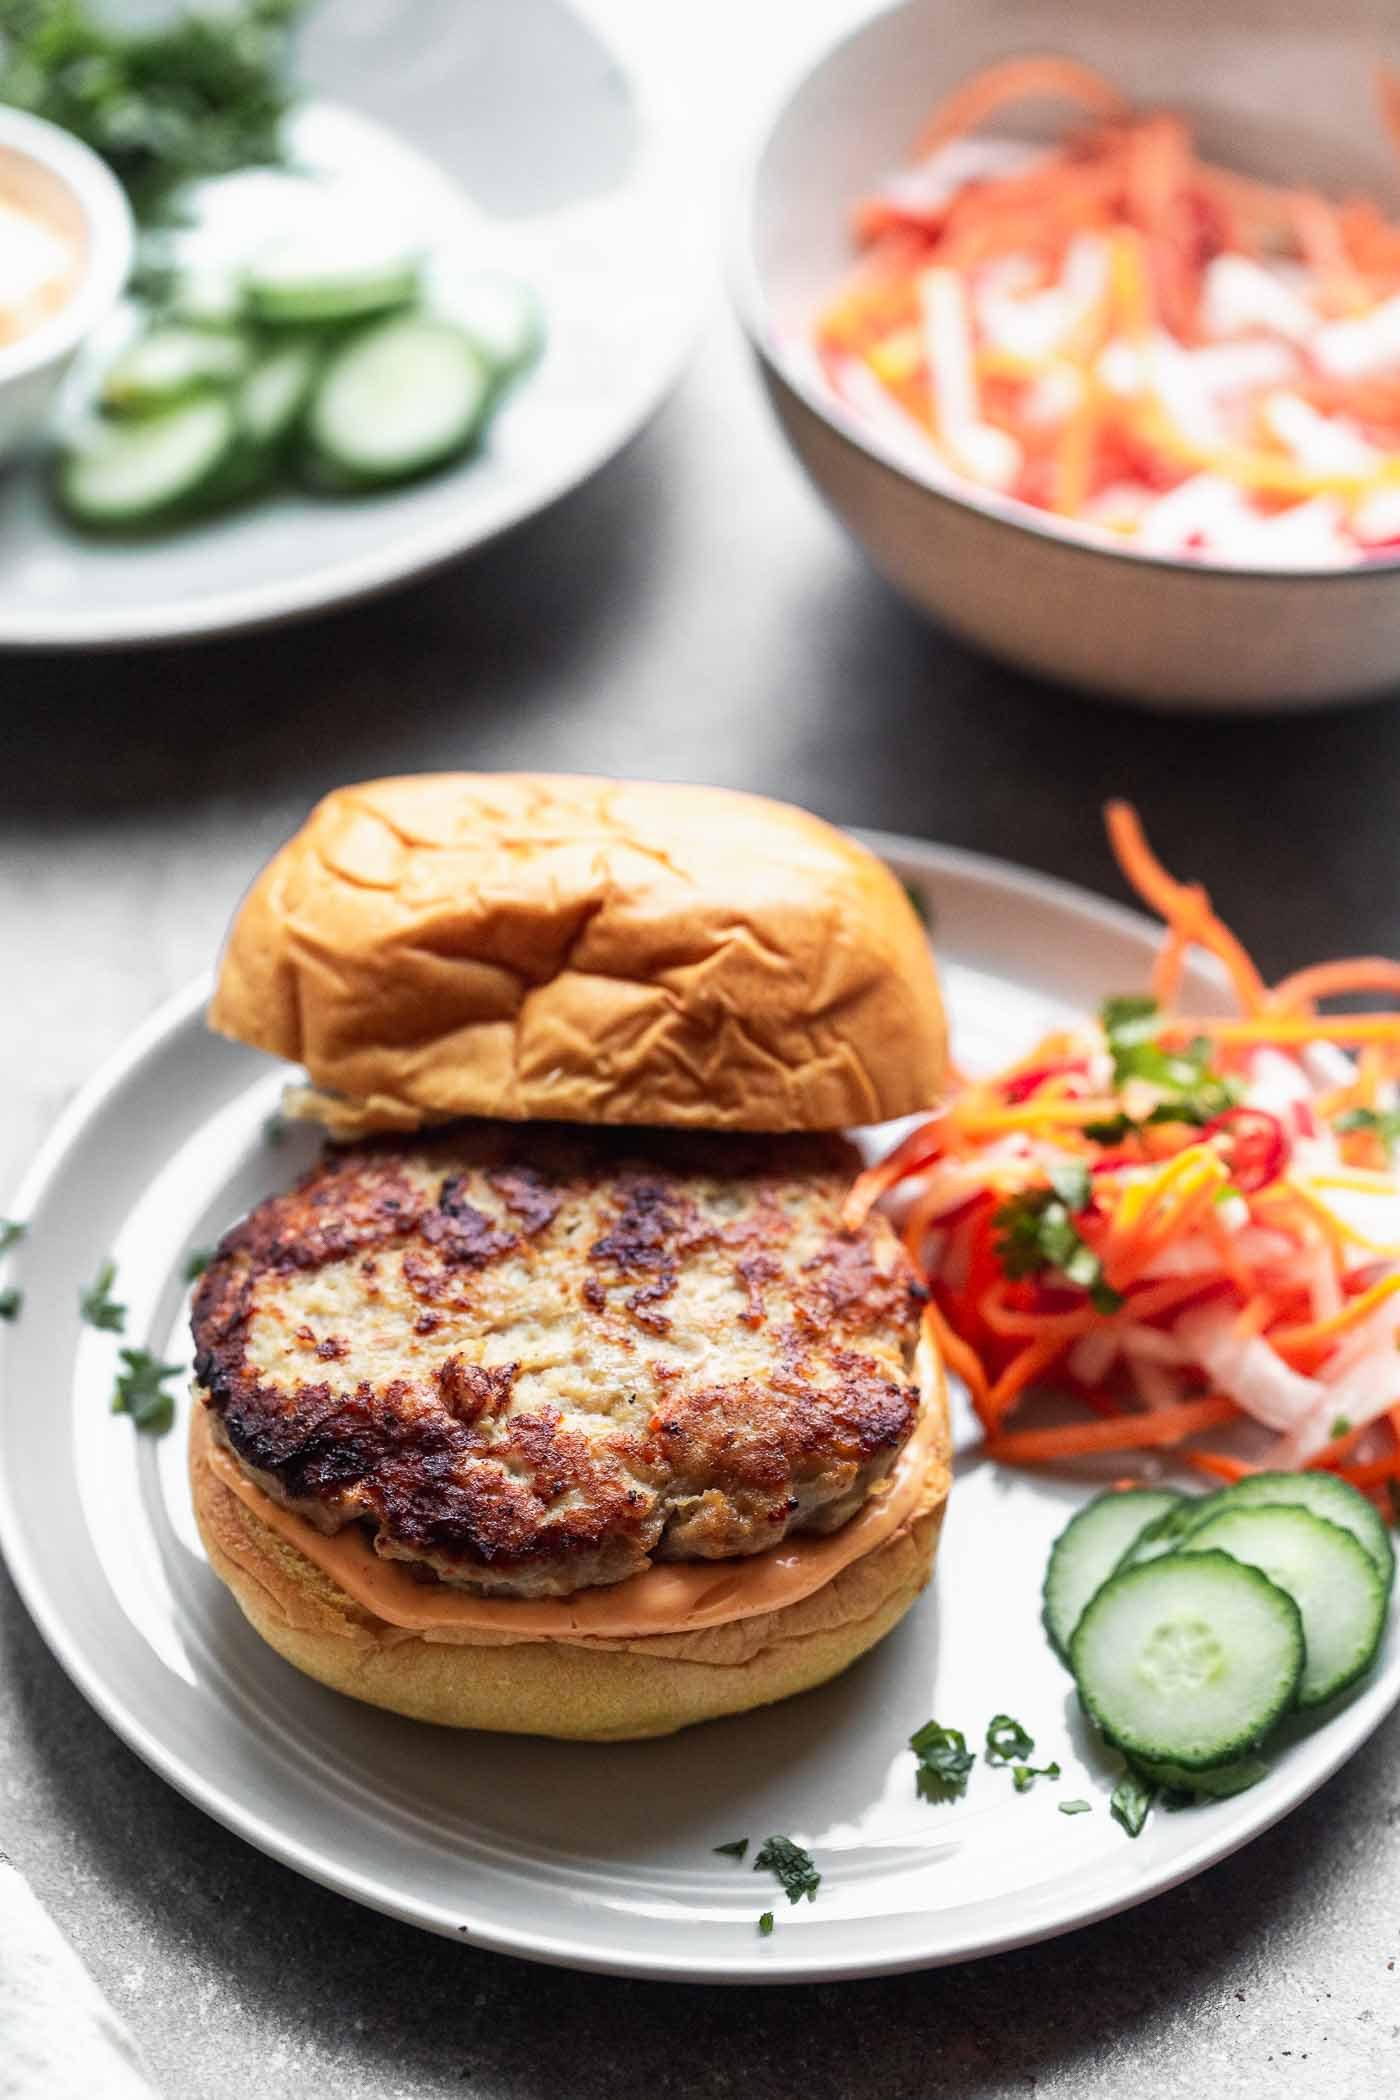 Bánh Mì Chicken Burgers are a burger take on a classic. A ground chicken patty is packed with all the flavors of a classic Bánh Mì sandwich, topped with sweet and spicy pickled veggies, a zippy sriracha mayo, and sandwiched between a toasted brioche bun.